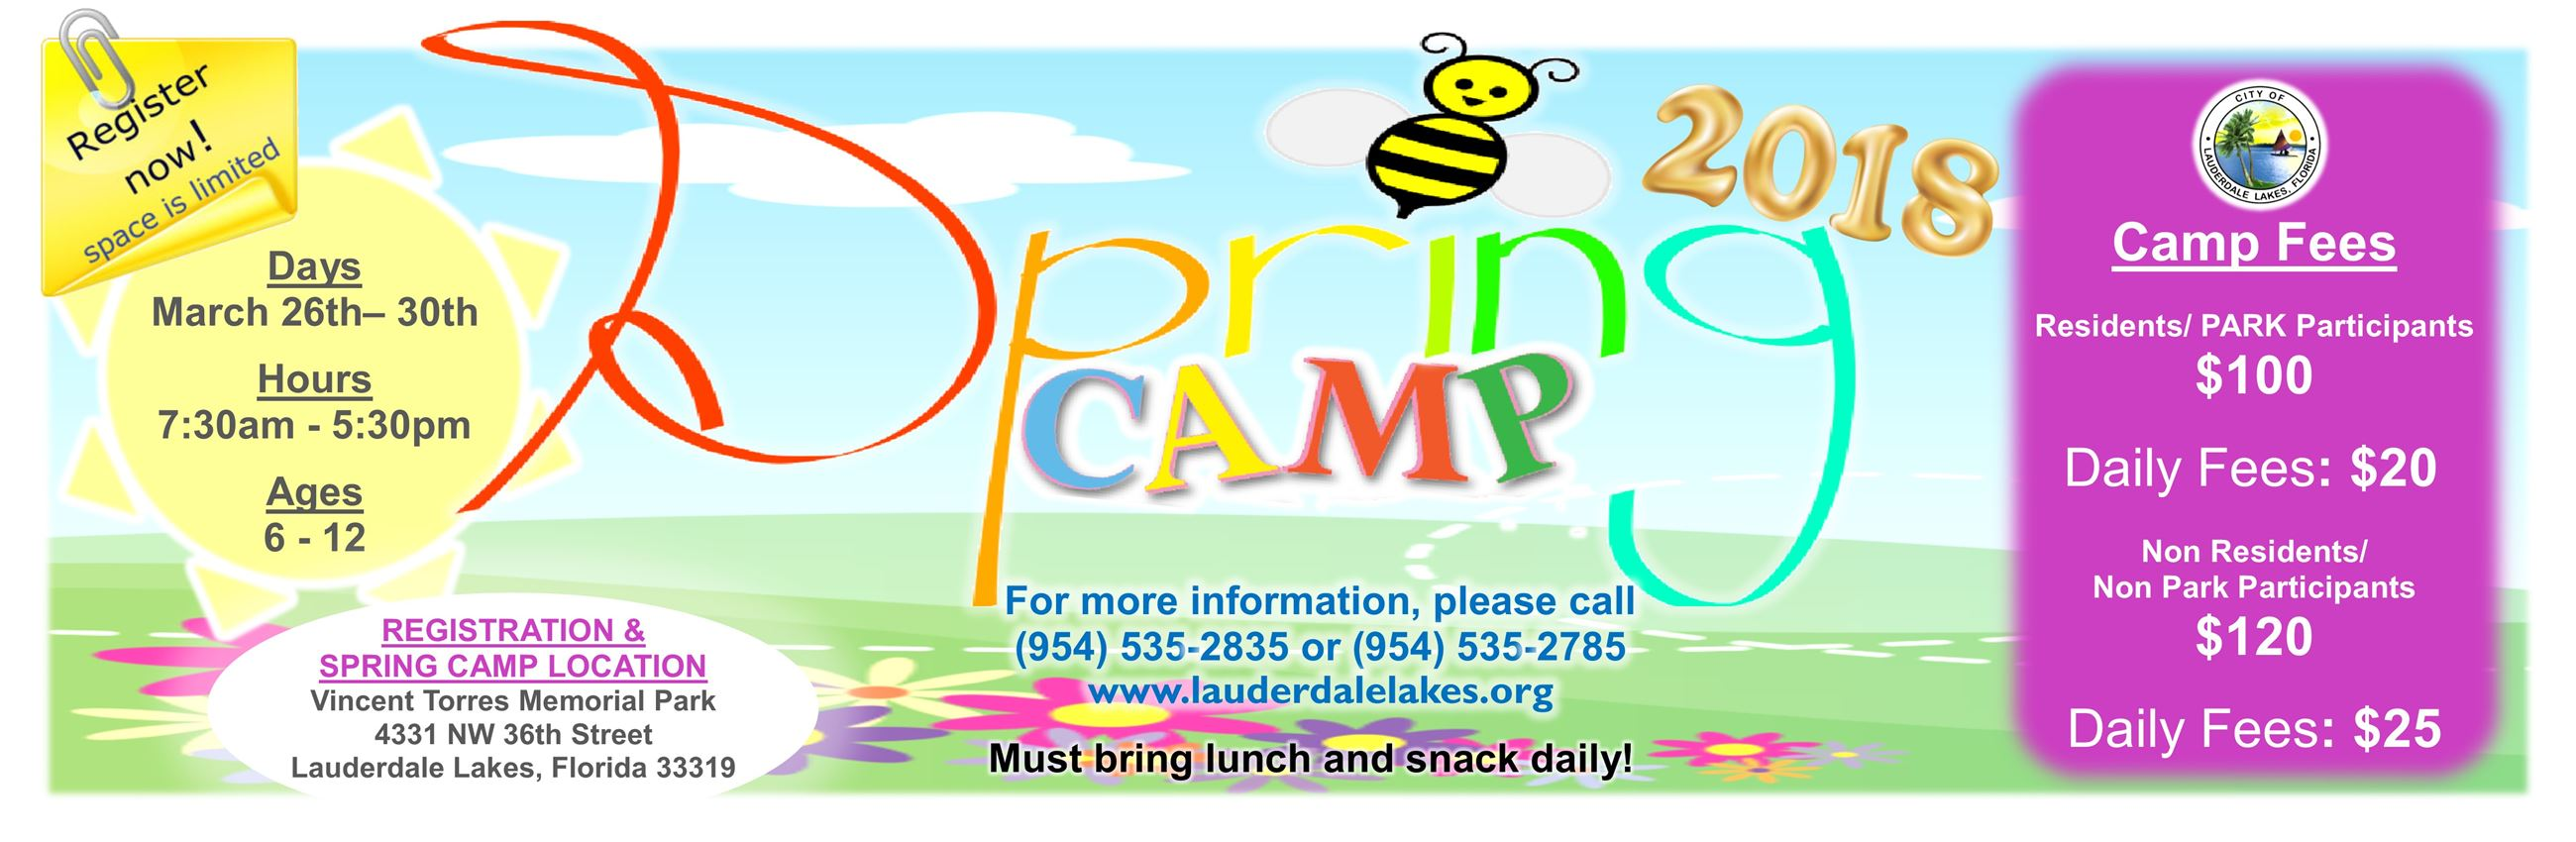 2018 Spring Camp Website Banner